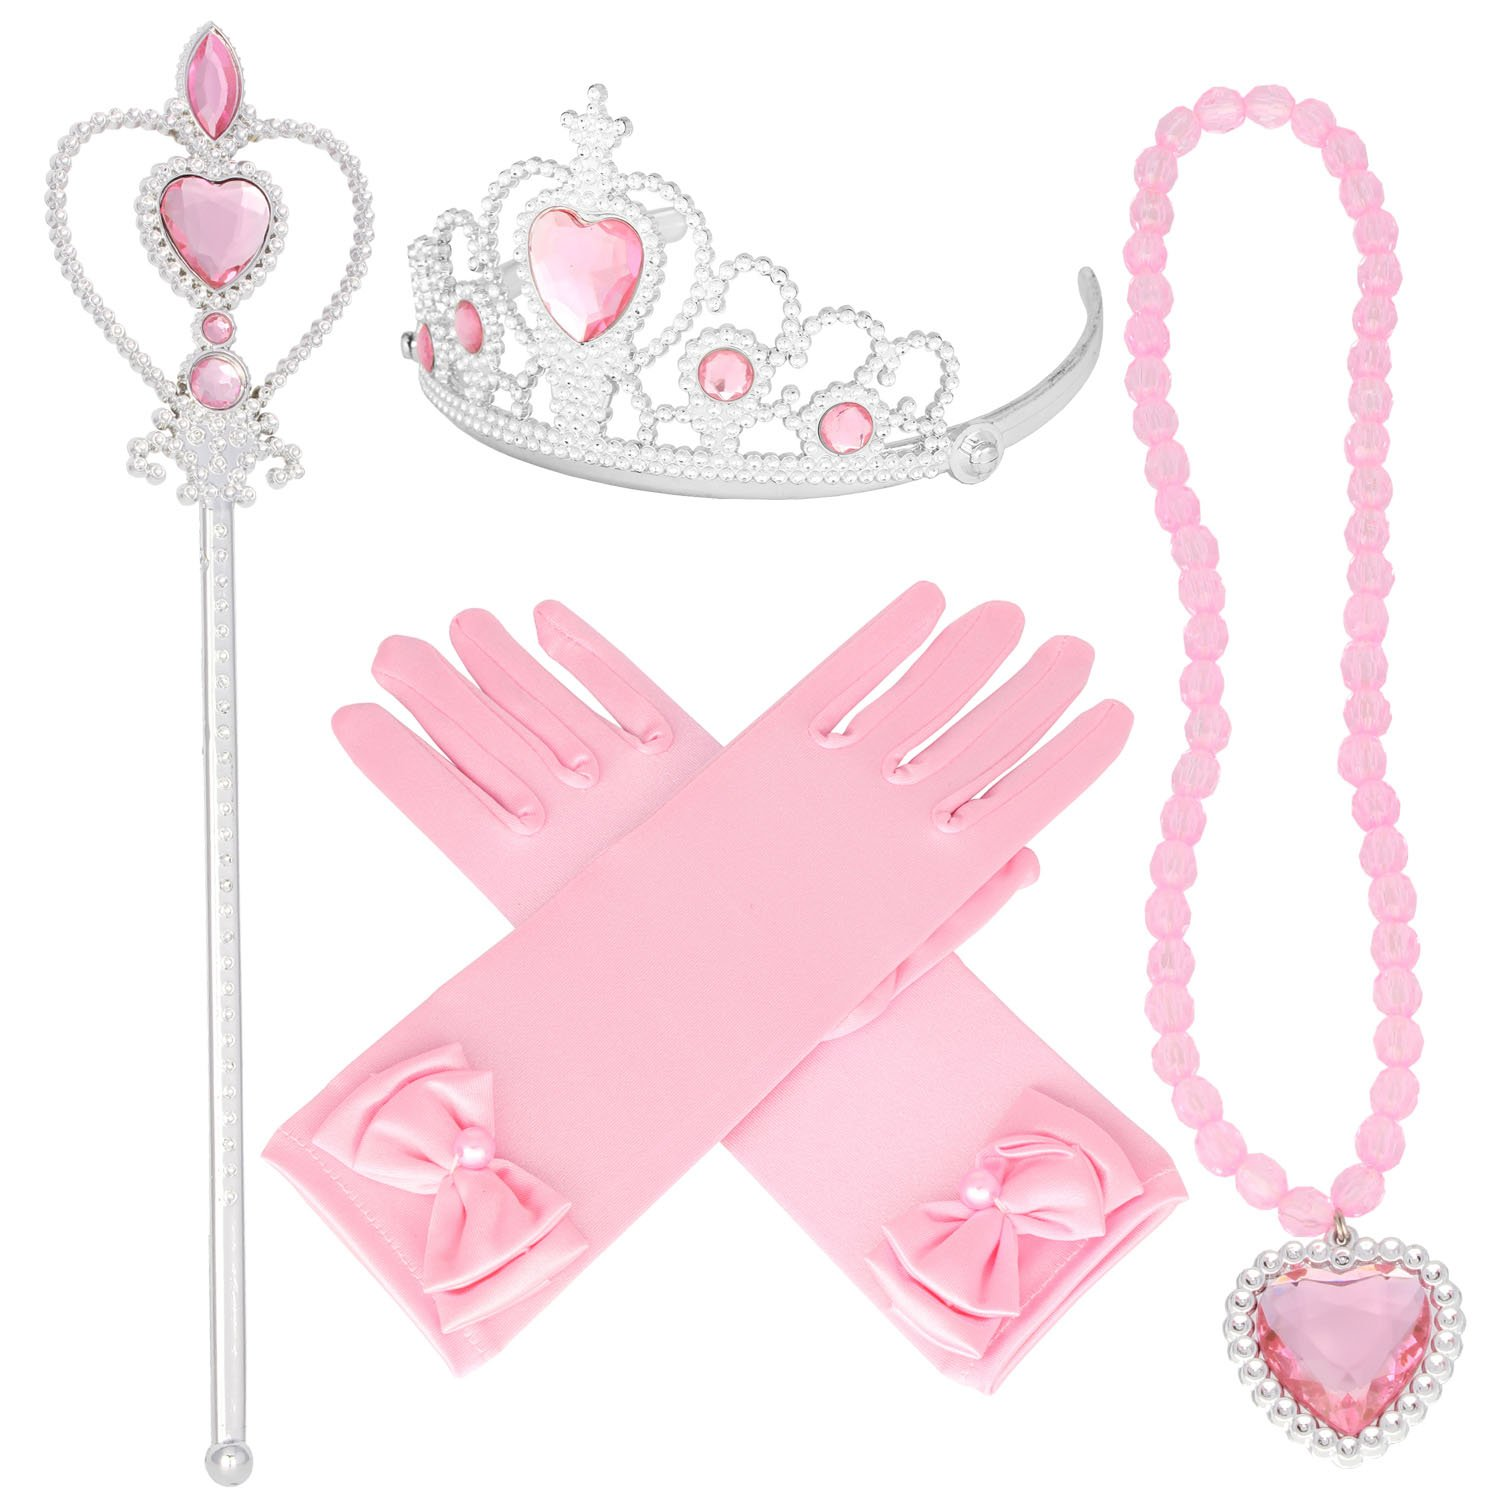 Tiaras and Crowns for Little Girls Princess Wands Gloves Pink Tiara and Necklace Set 4 Ps